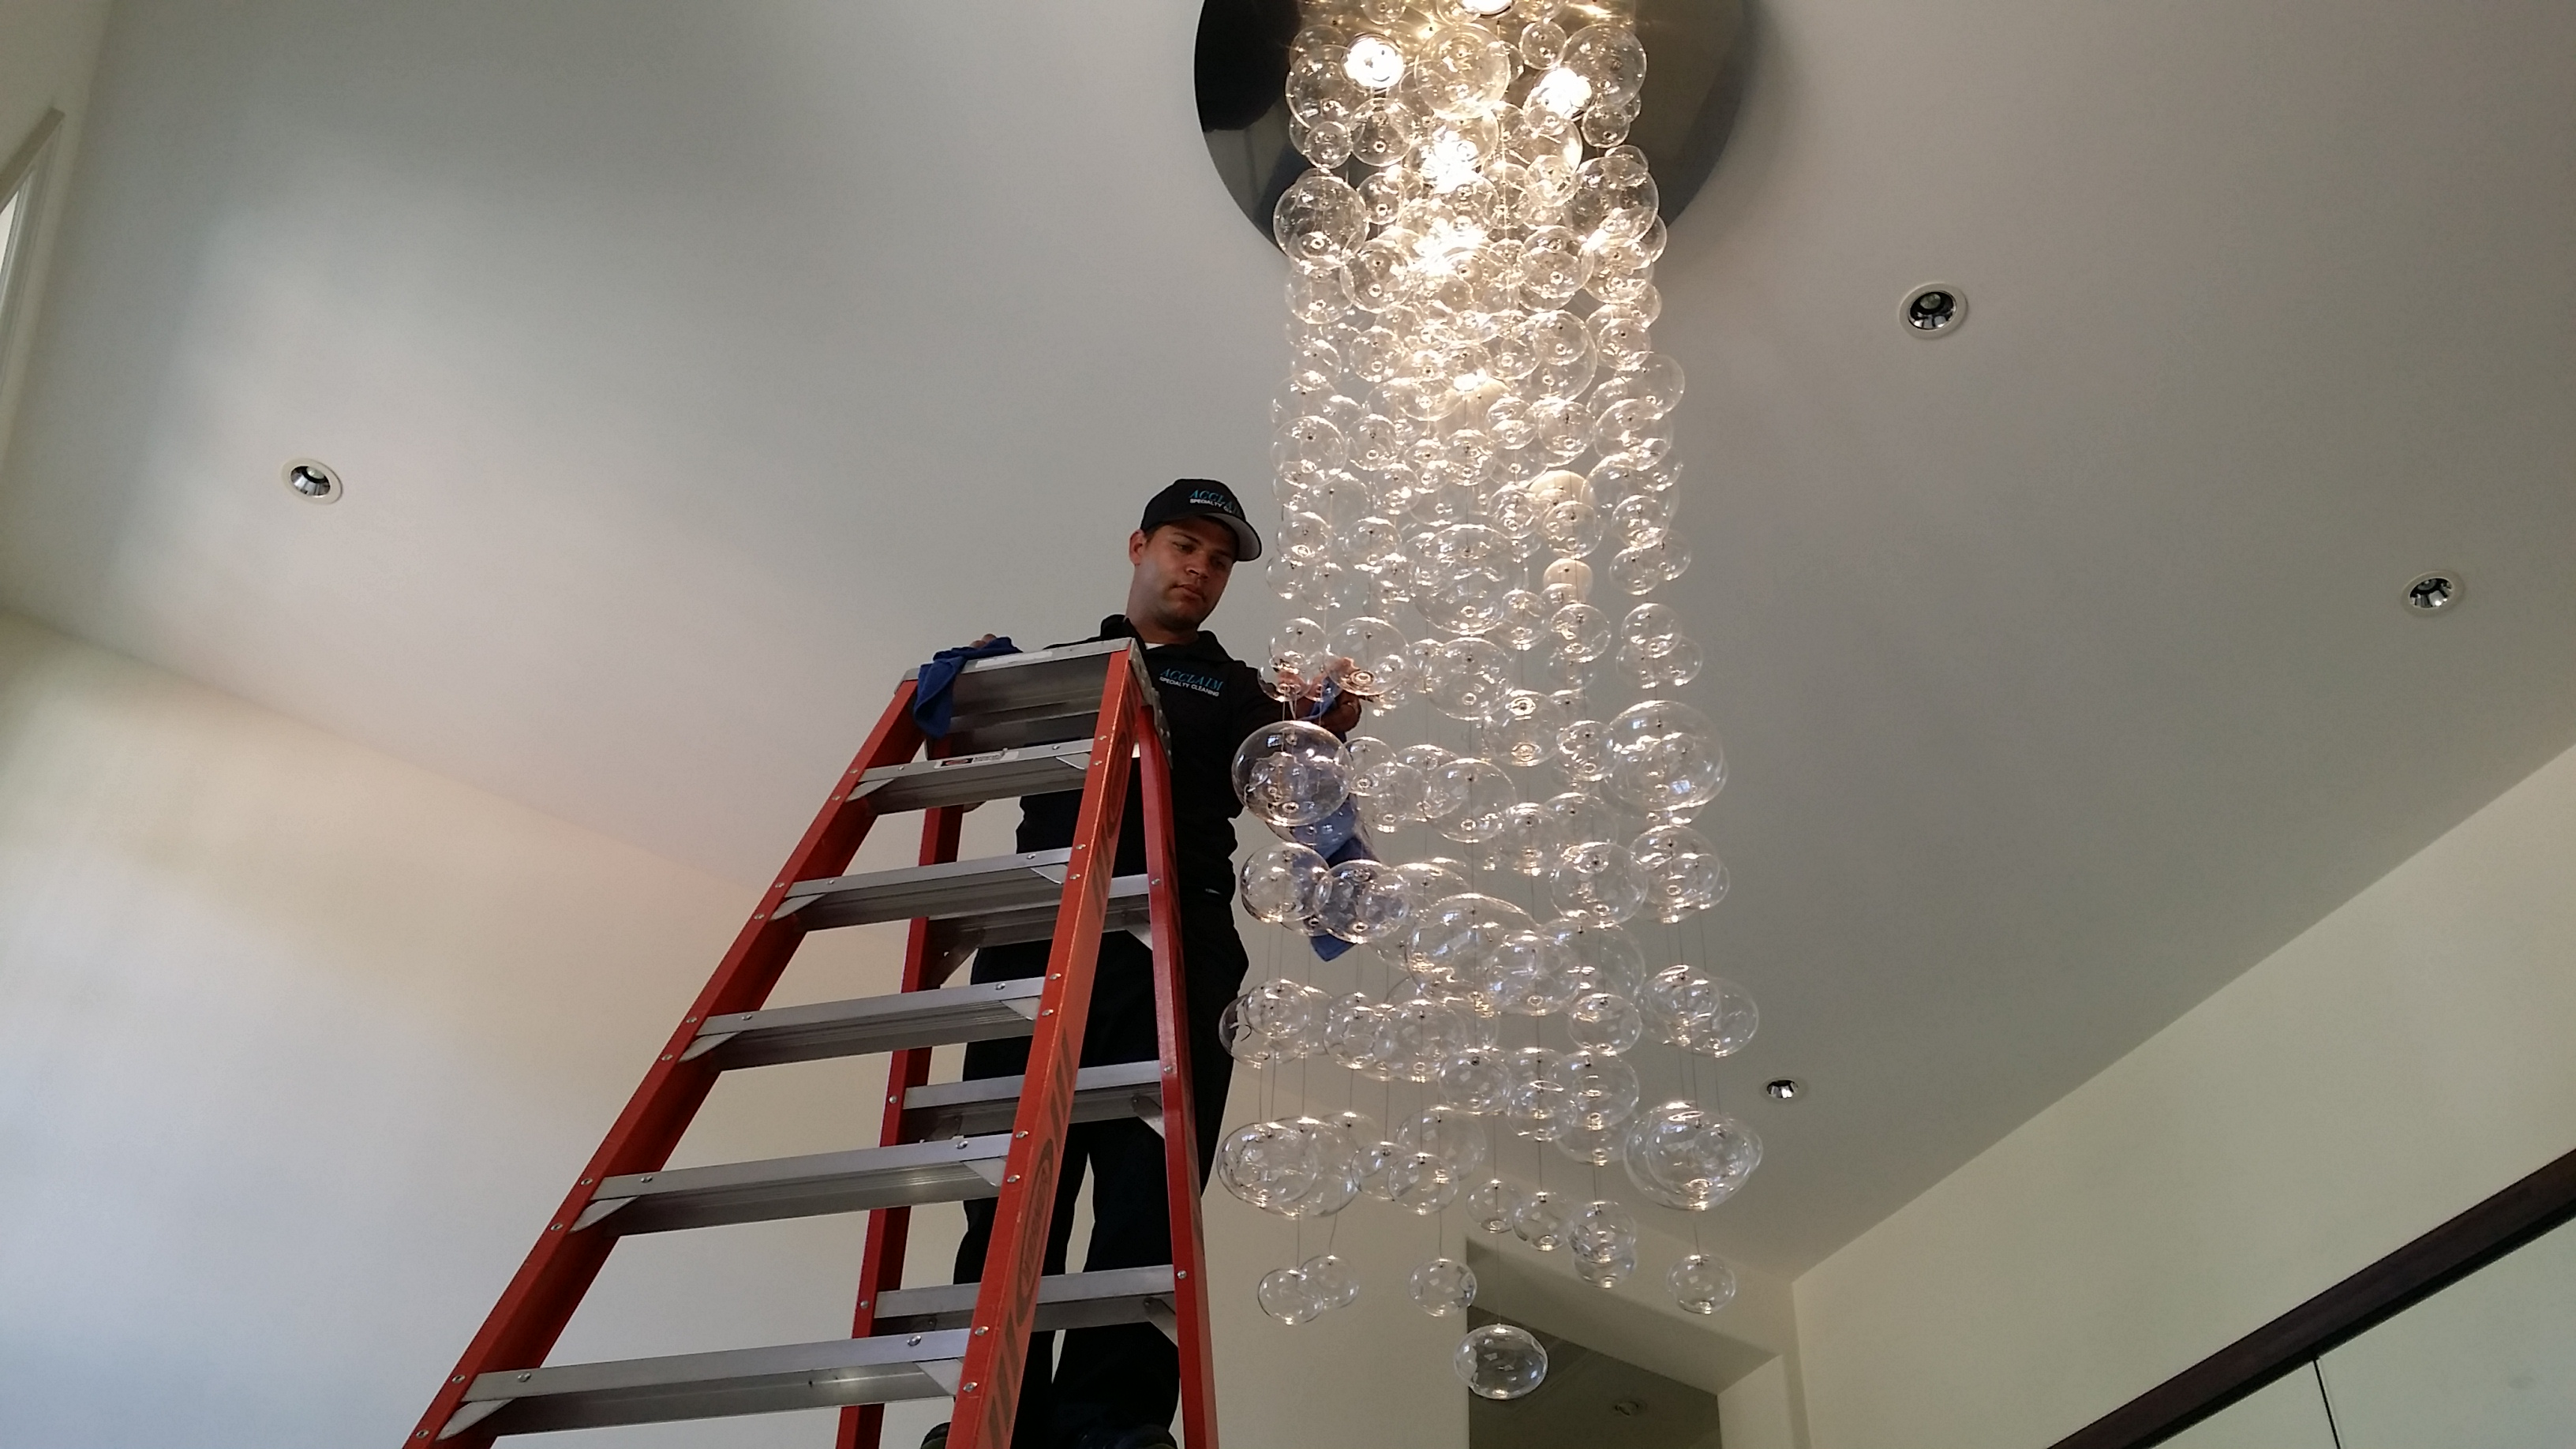 Bubble Chandelier Cleaning